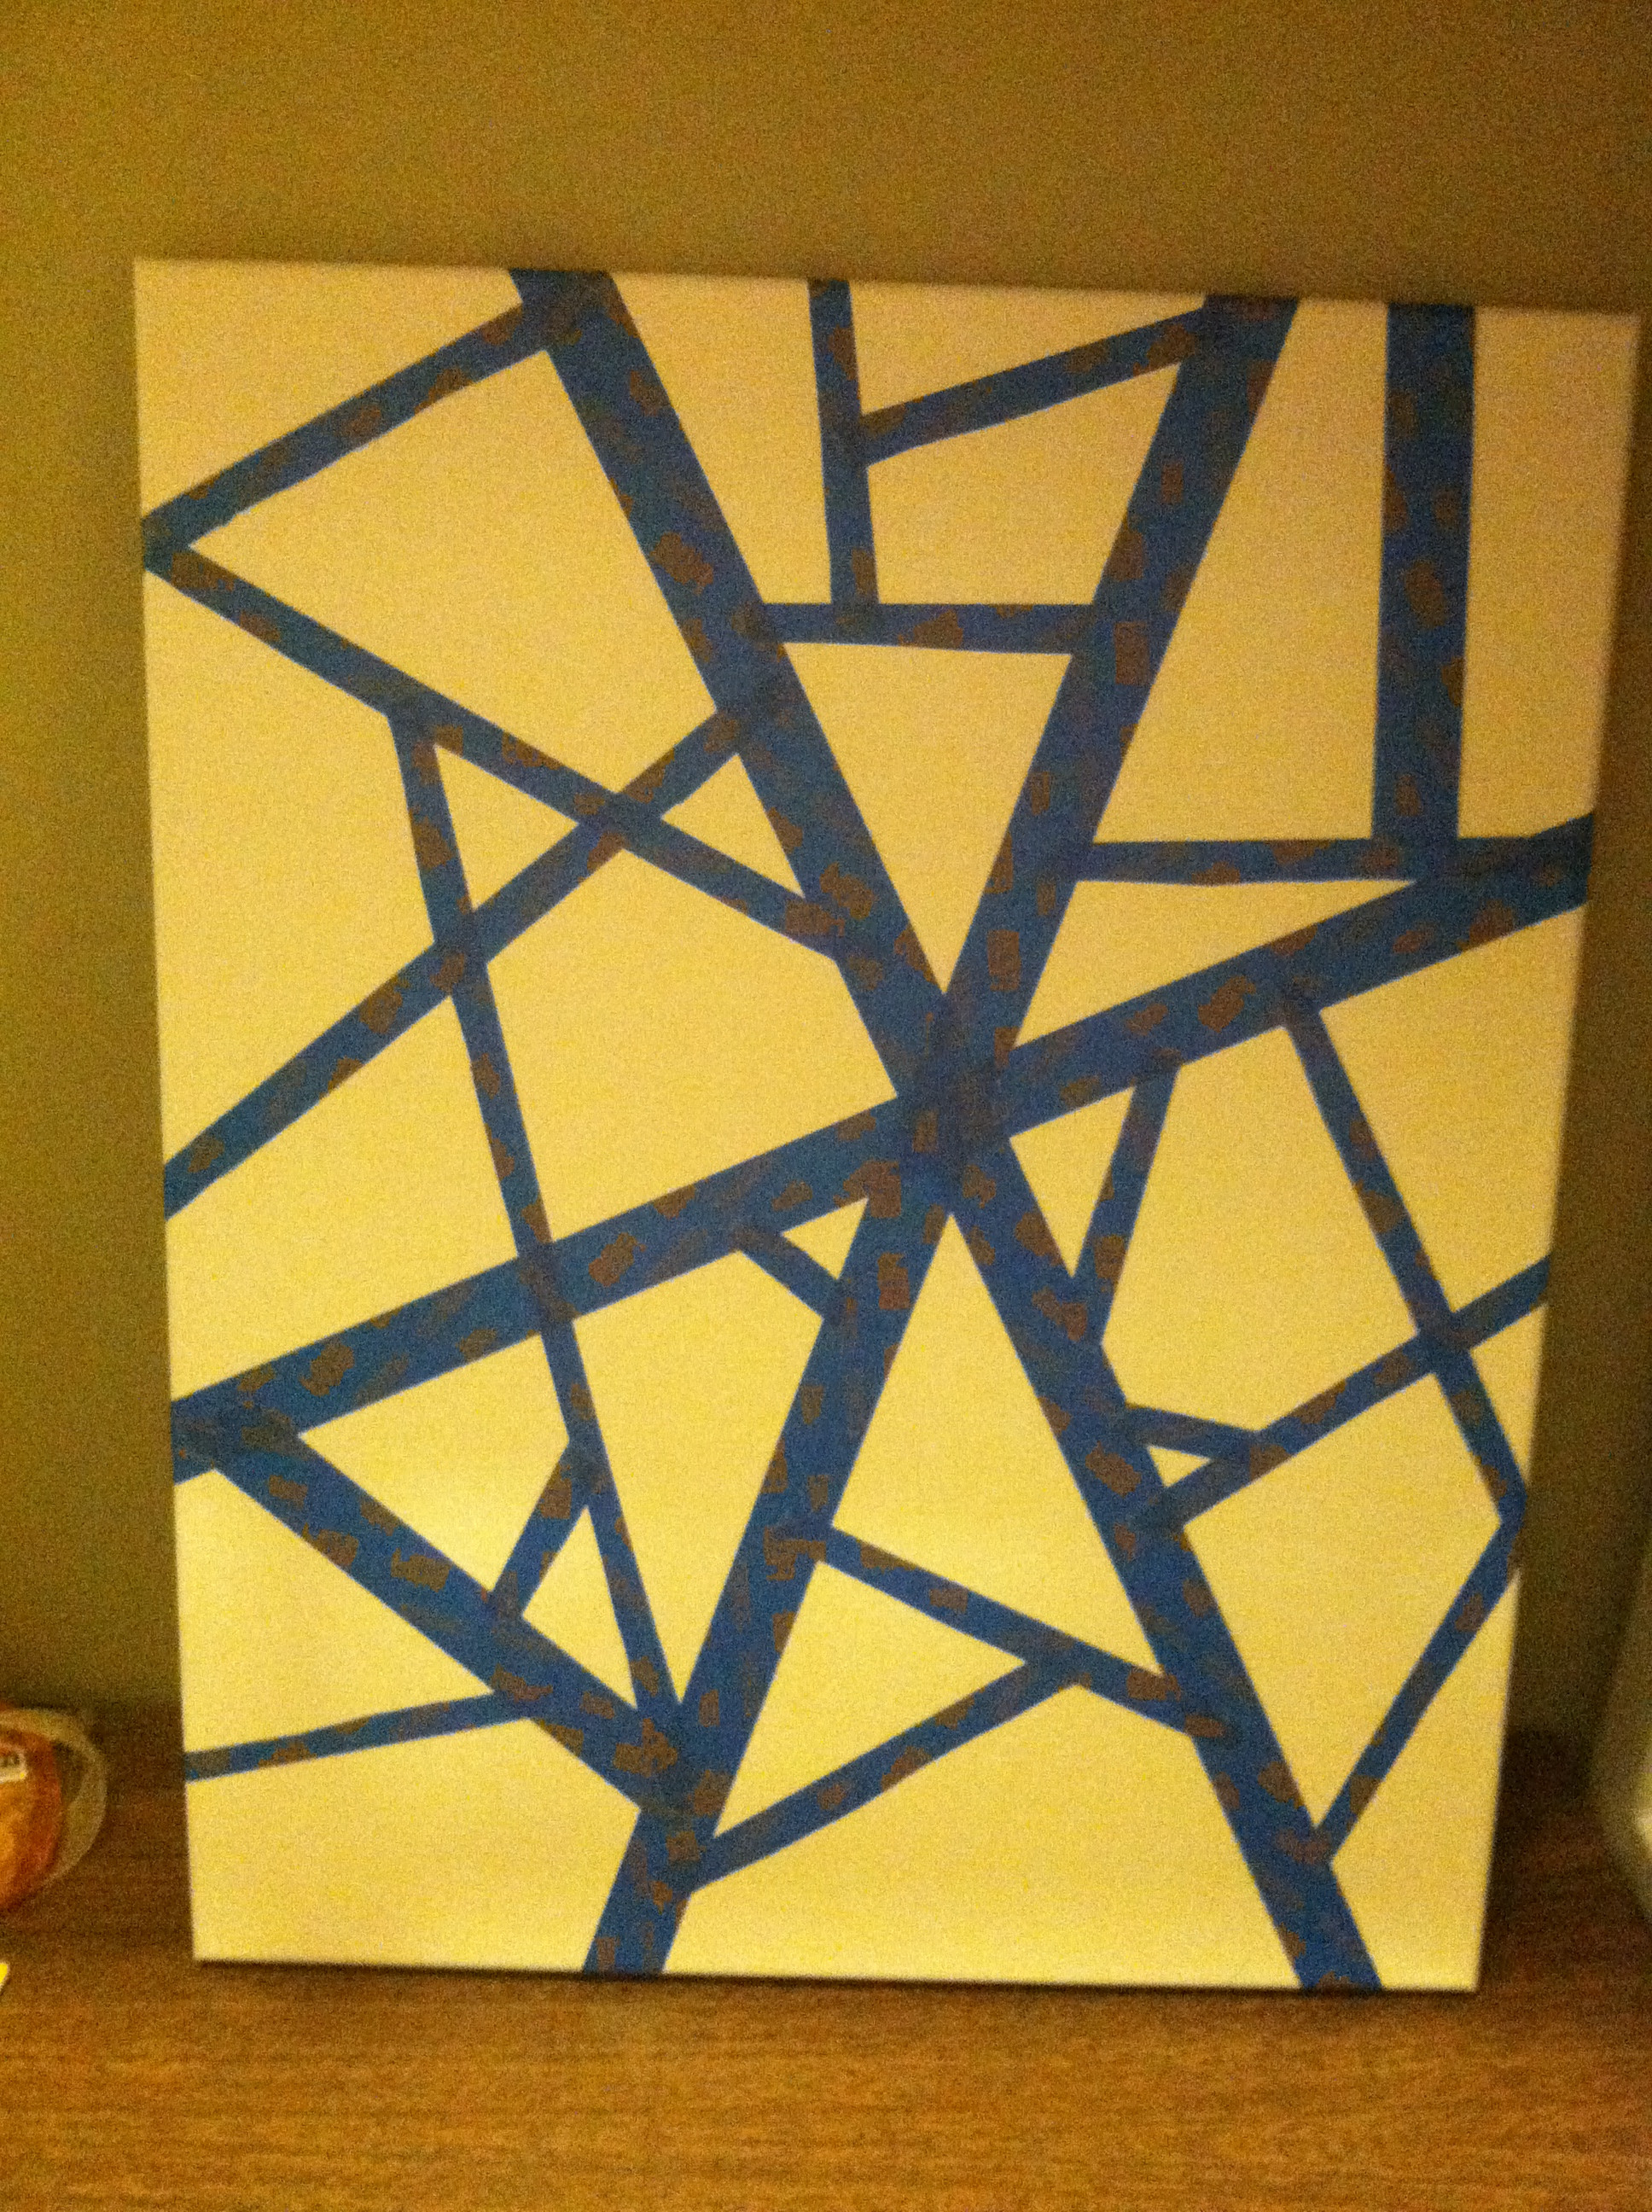 Best ideas about Geometric Wall Art . Save or Pin Geometric Wall Art Now.